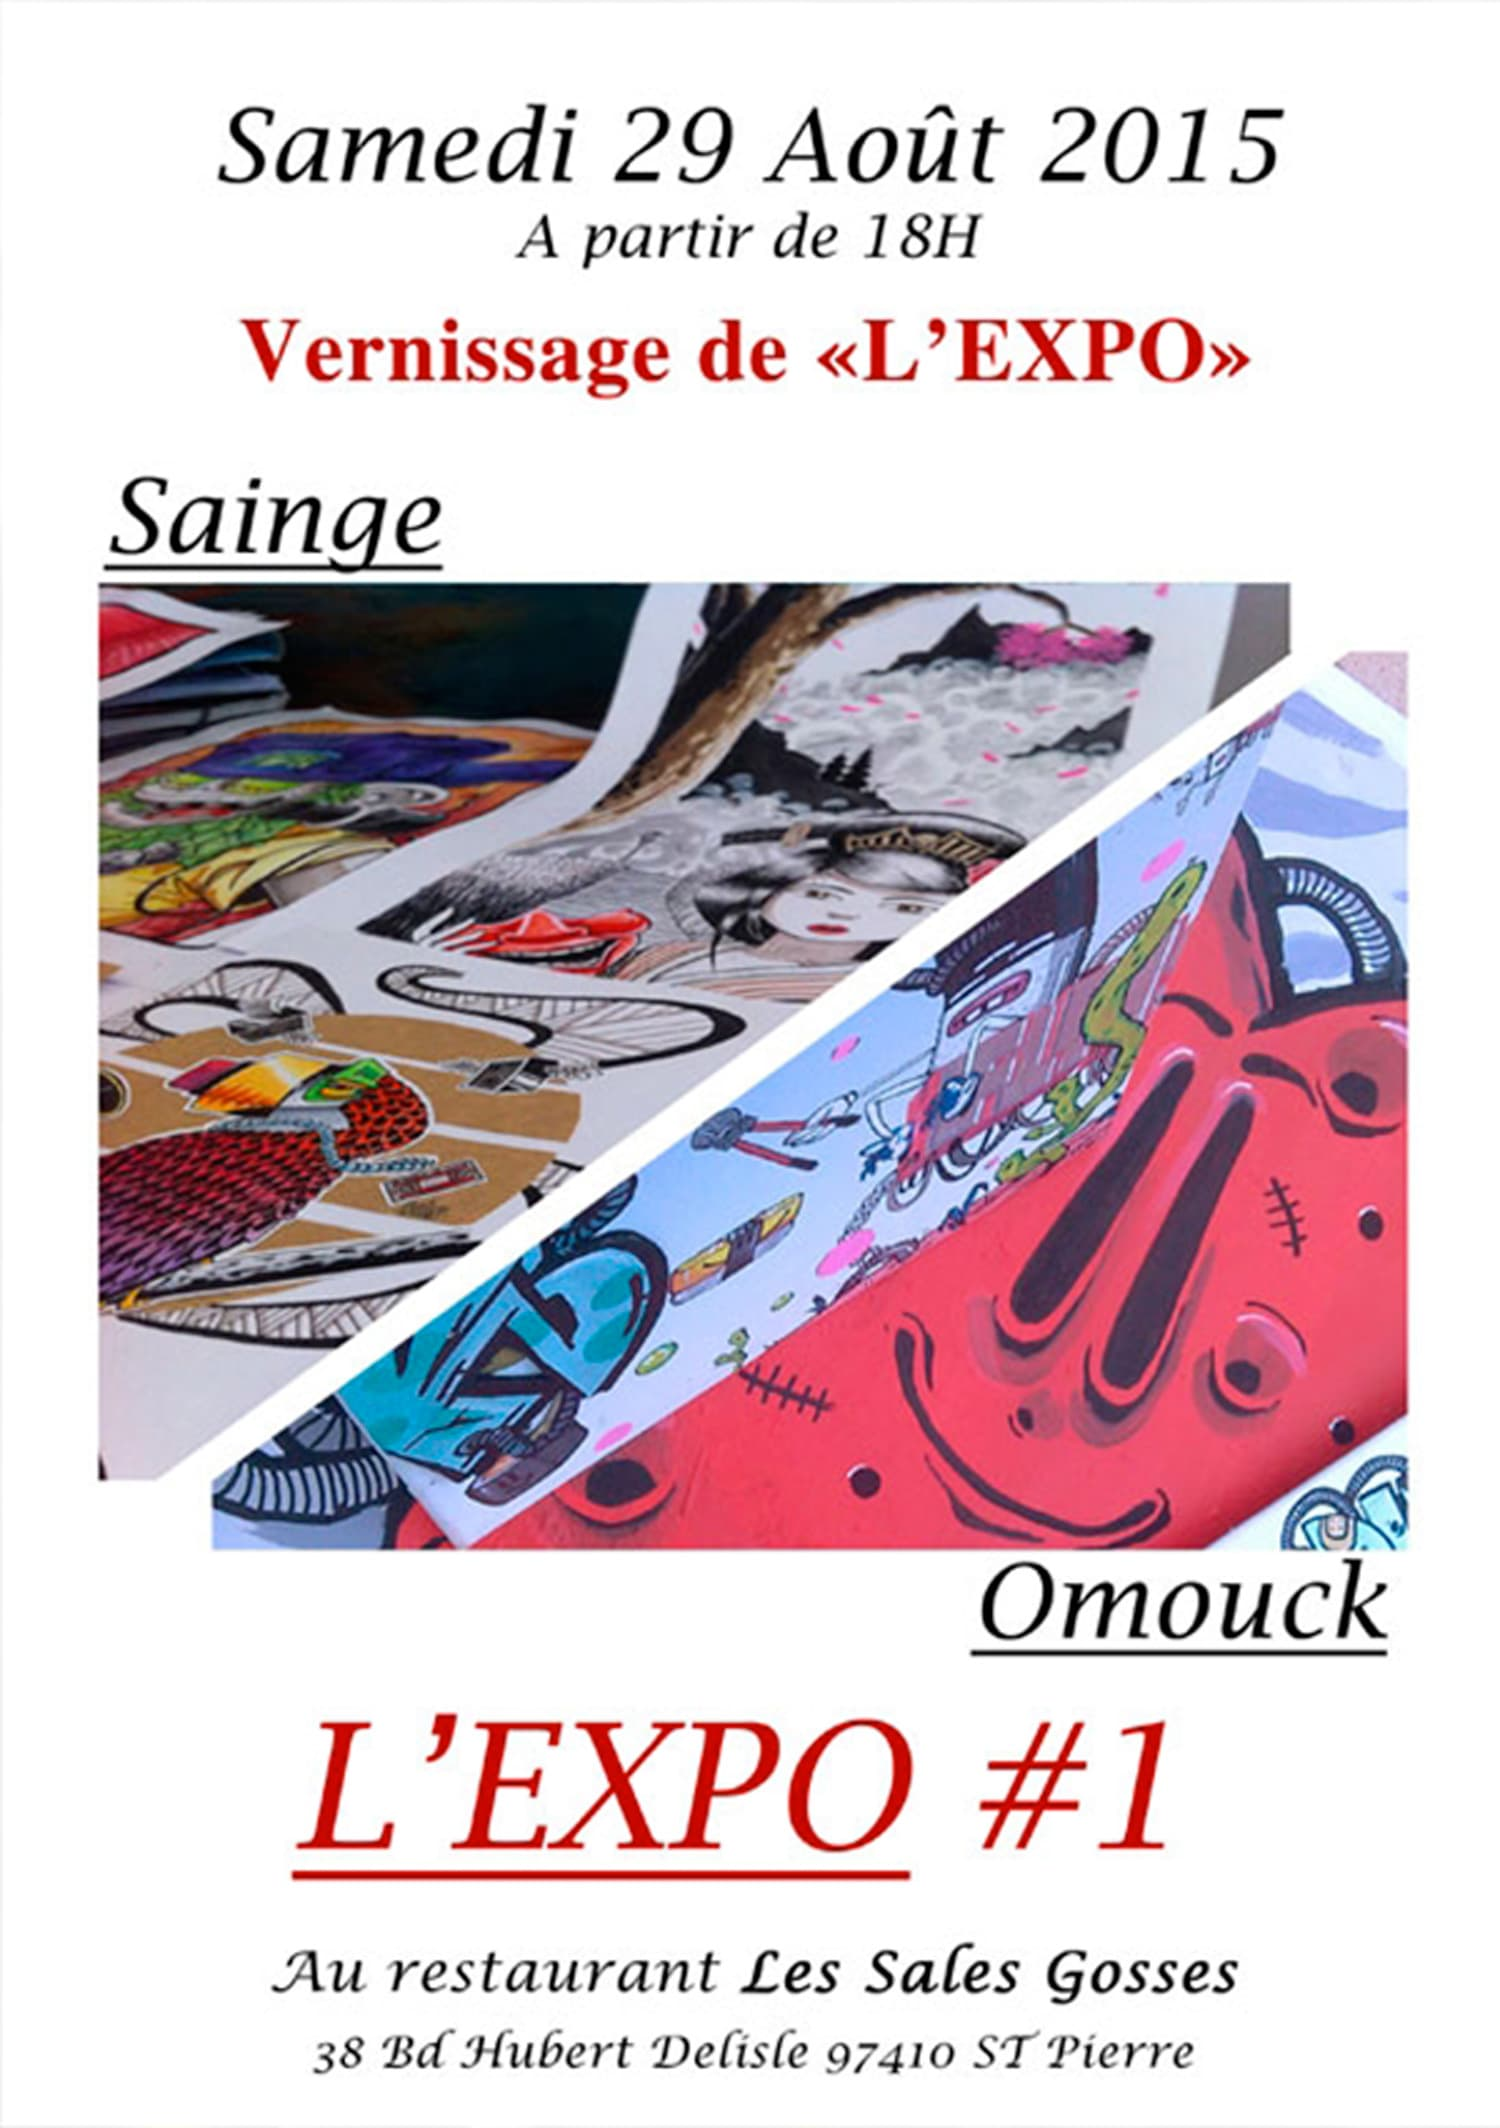 ARTICLE-Vernissage de « l'expo » Omouck & Sainge